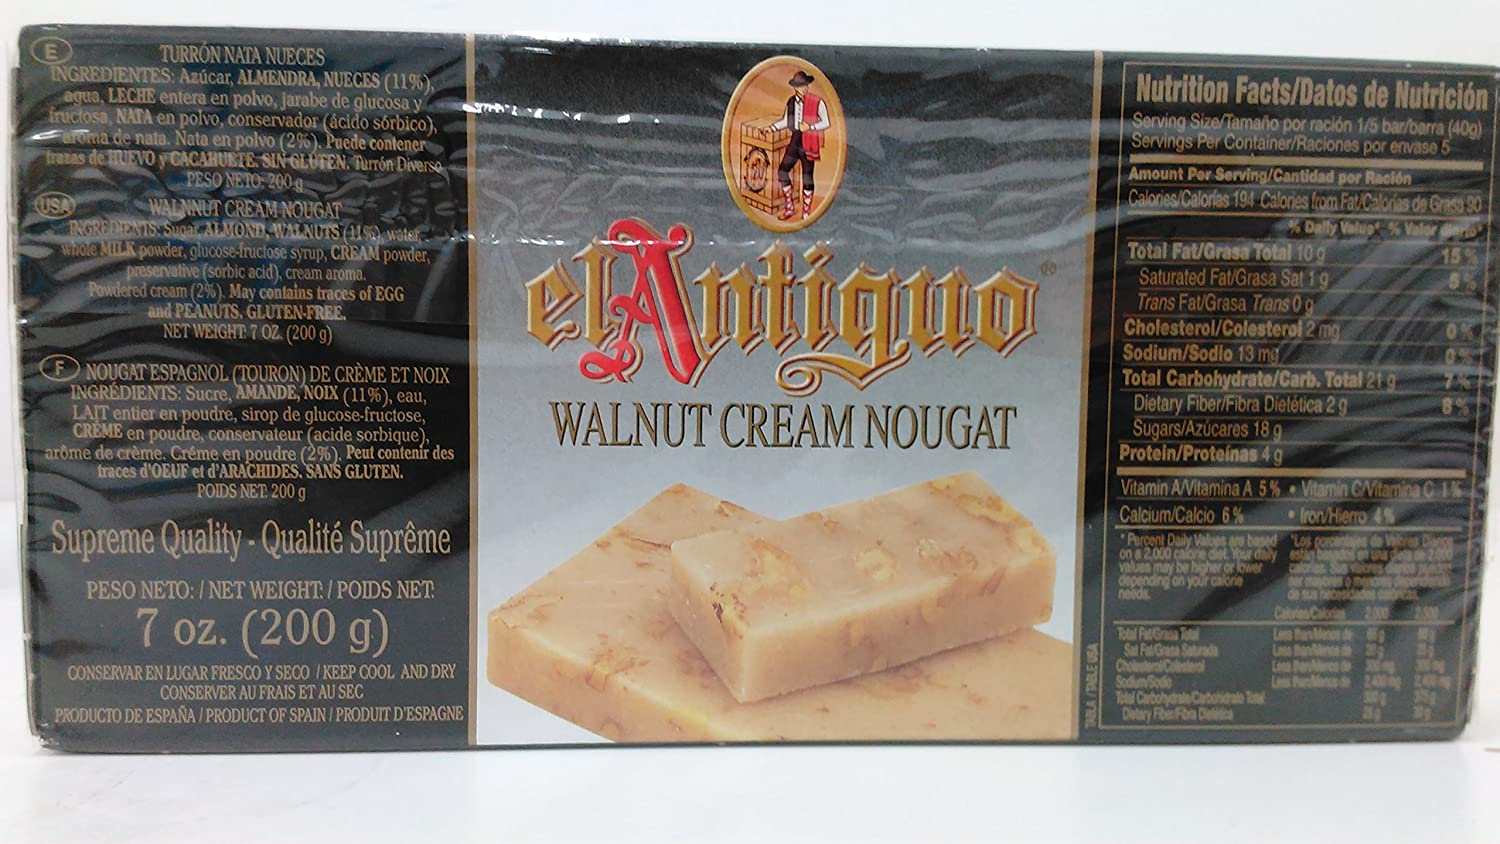 Amazon.com : El Antiguo Calidad Suprema Turron Nata Nueces - Walnut Cream Nougat : Grocery & Gourmet Food